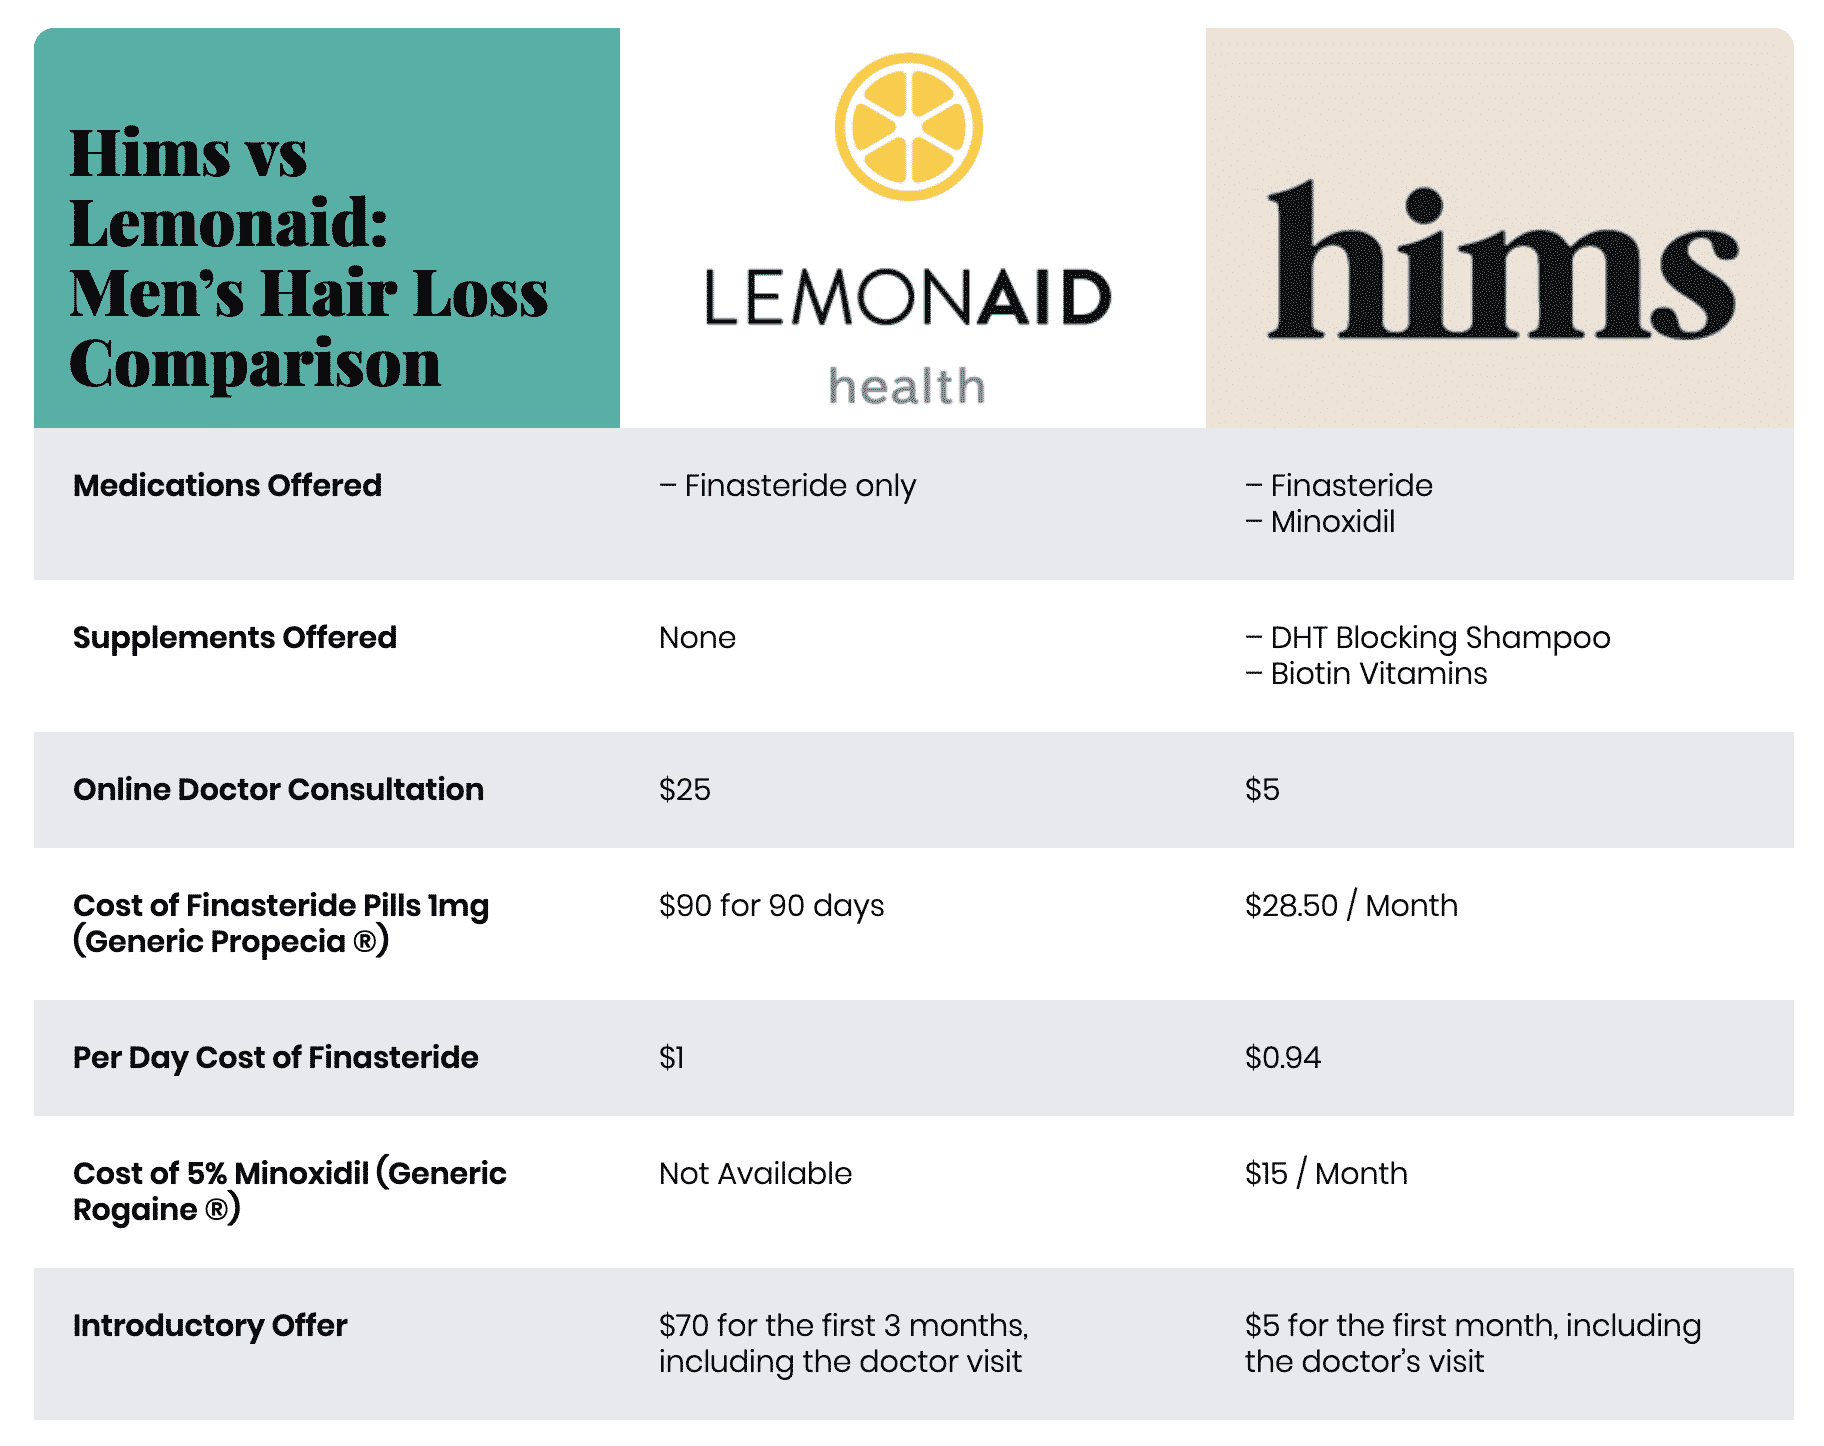 Hims vs Lemonaid for Men's Hair Loss Treatment